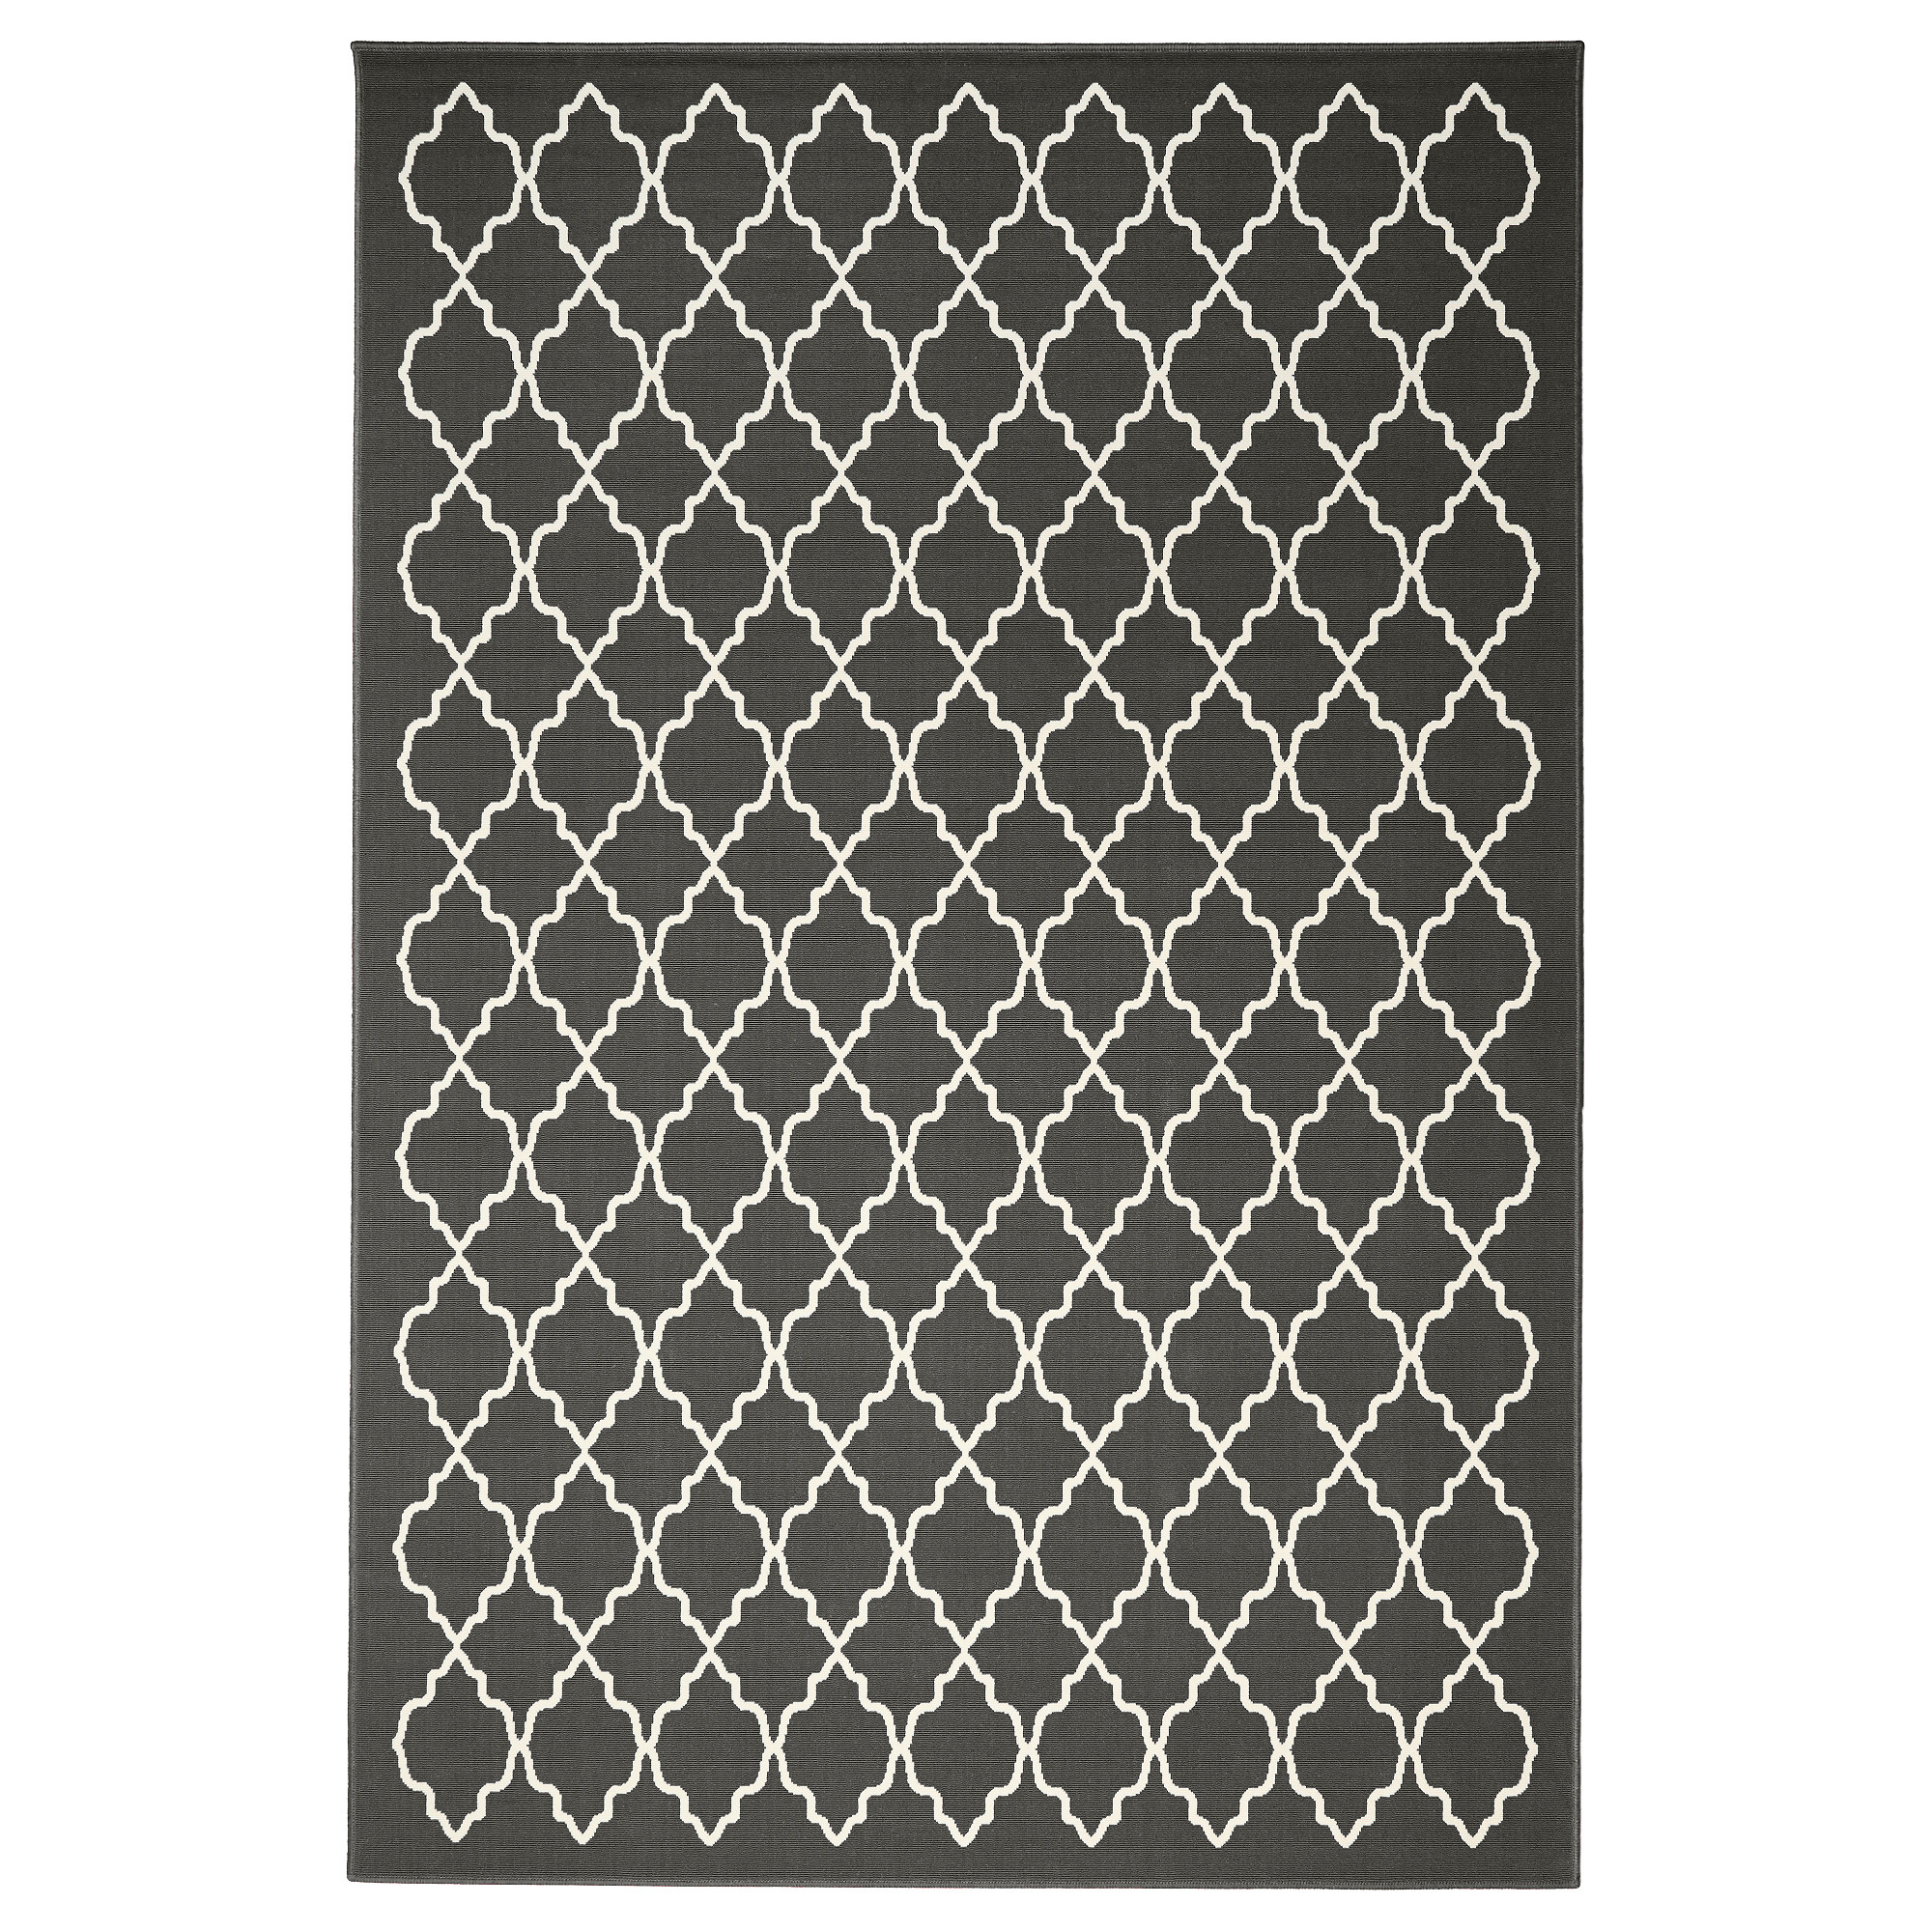 ikea tapis id es de d coration int rieure french decor. Black Bedroom Furniture Sets. Home Design Ideas